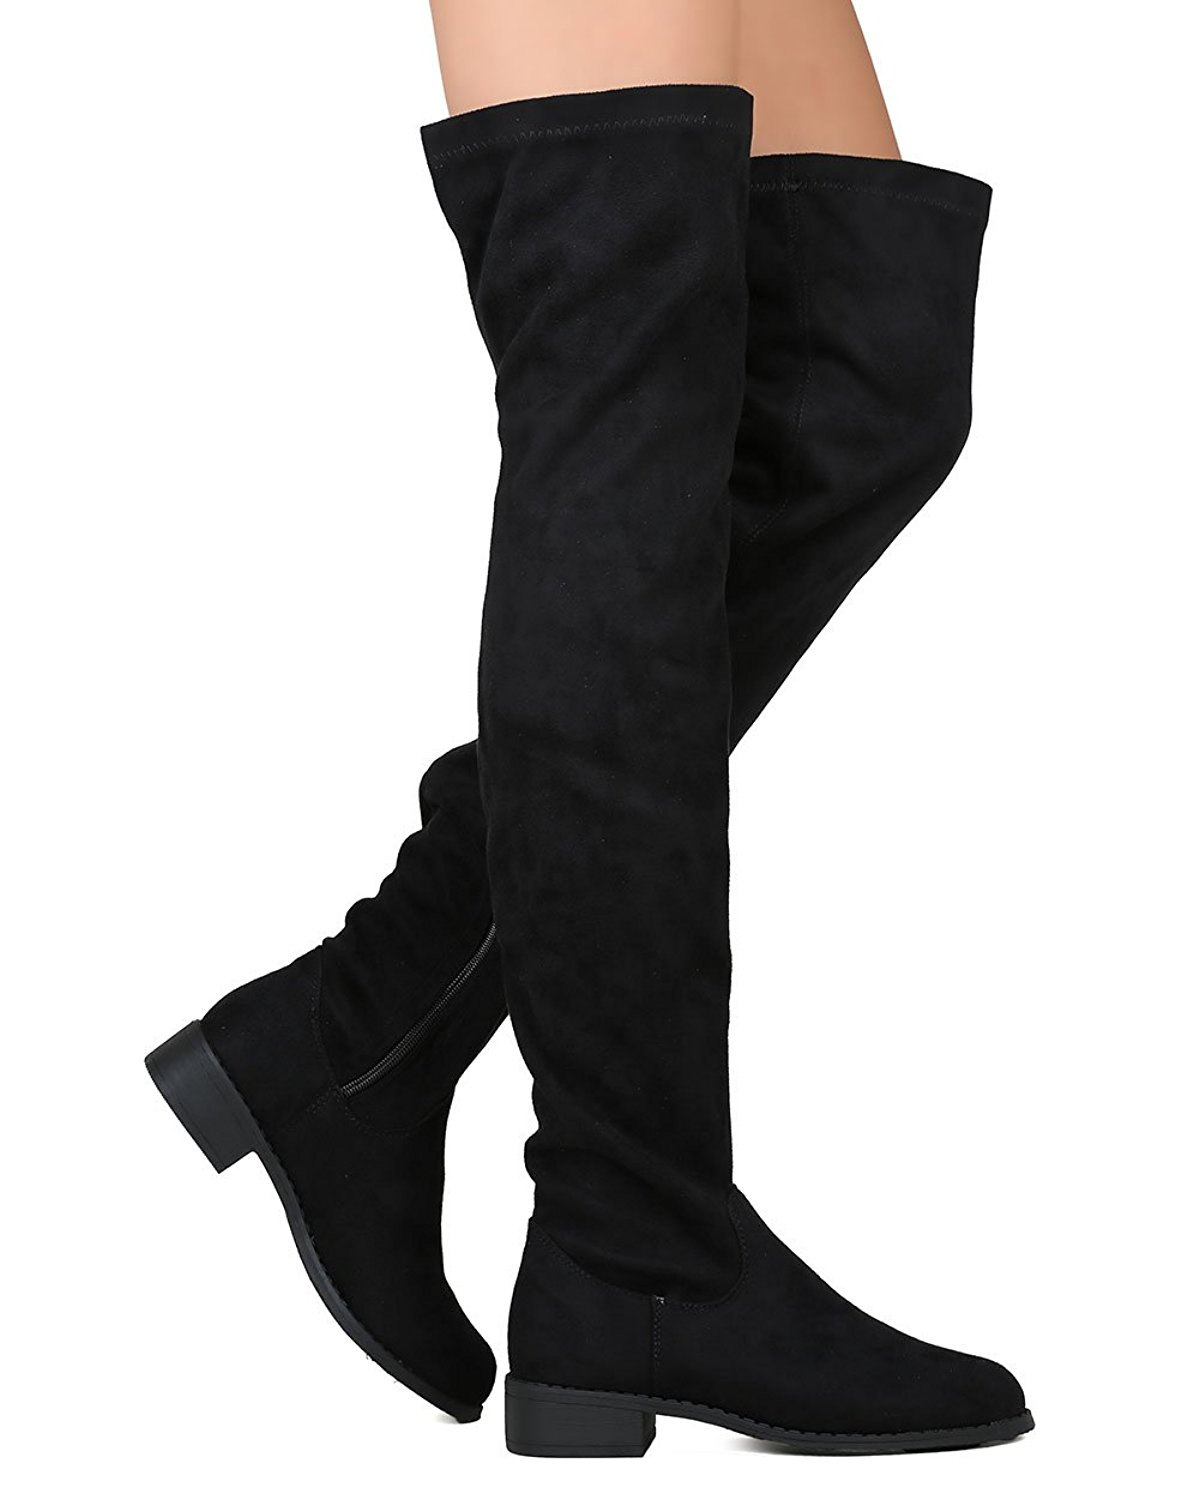 0e479d57974d Get Quotations · Women s Thigh High Flat Riding Boots Stretchy Girls Night  Low Block Heel Pull on Dressy Casual